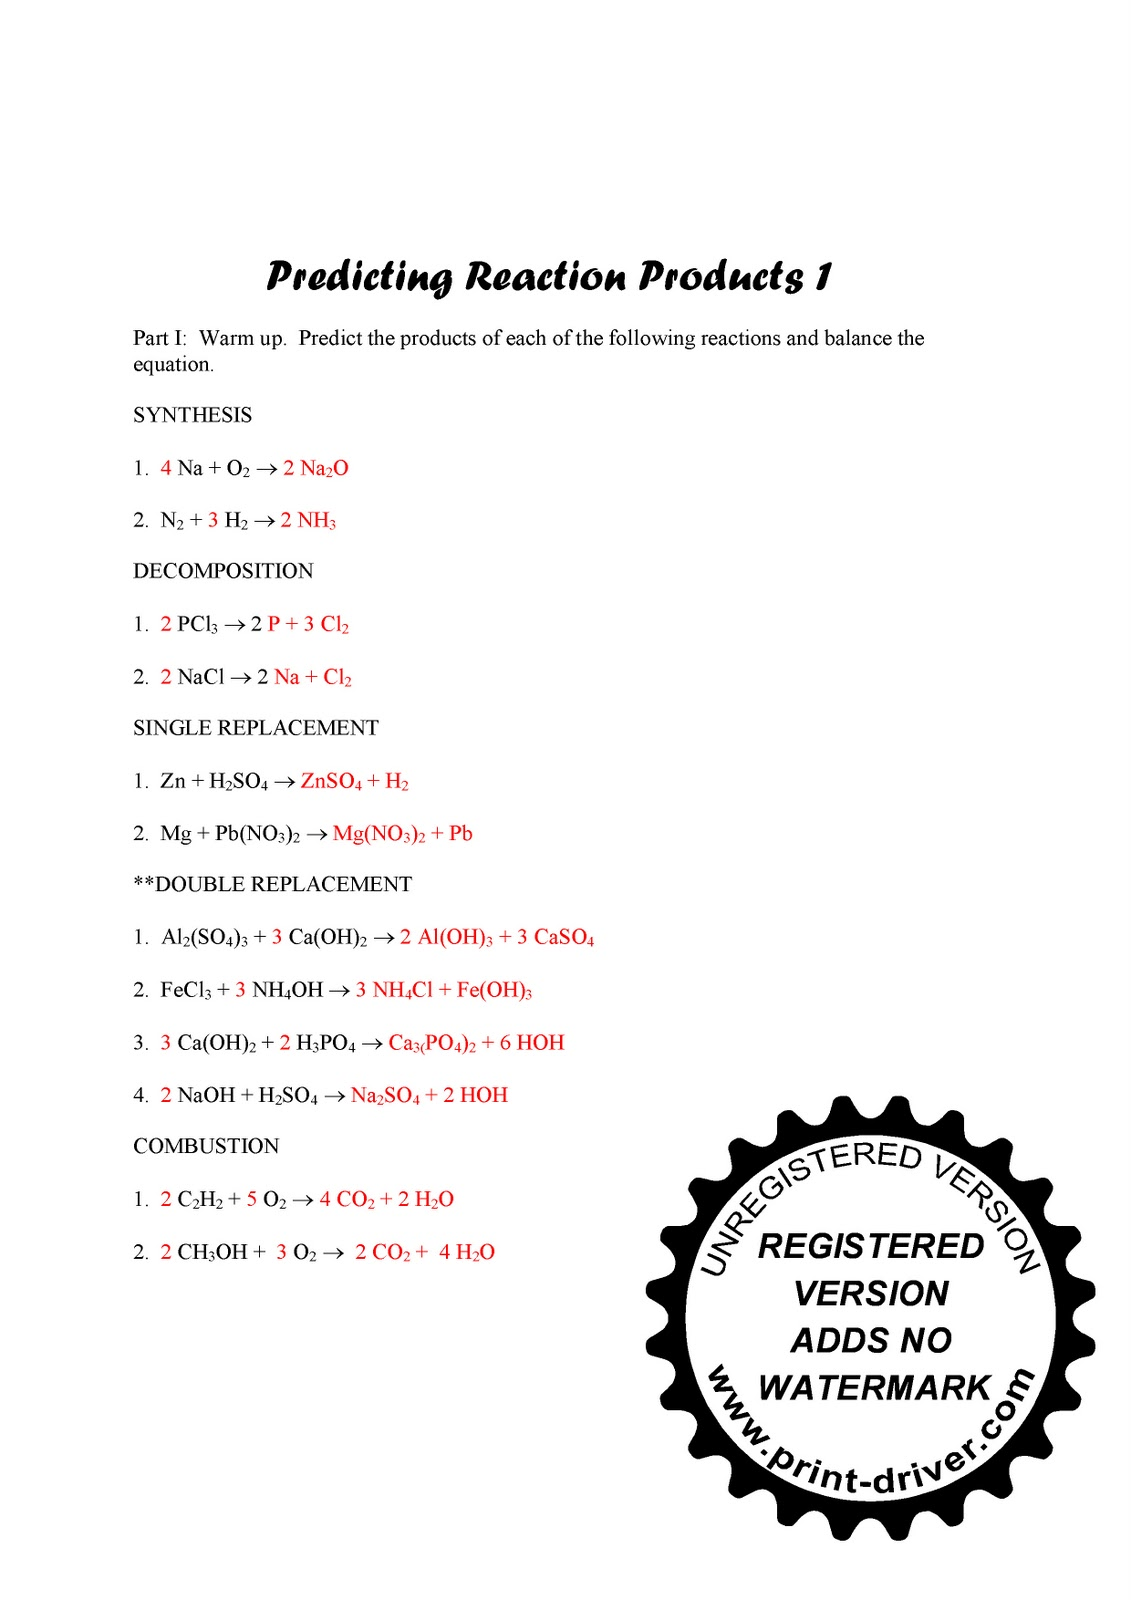 Printables  Chemistry Predicting Products Worksheet as well Predicting Products Of Chemical Reactions Worksheet The best in addition  as well Homework with predicting reaction products   staging fpiw org moreover Predicting Reaction Products Worksheet   Livinghealthybulletin additionally Predicting Products Of Chemical Reactions Worksheet together with Reading  prehension   Predicting Reaction Products Worksheet likewise Predicting The Products of Chemical Reactions   Chemistry Ex les likewise Predicting Reaction Products Worksheet Answers as well Rates Of Reaction Worksheet moreover Predicting Reaction Products Worksheet Answers also  further Predicting Reaction Products Worksheet Answers likewise Predicting Chemical Reactions Worksheet Worksheets Chemistry additionally Solving Chemical Reactions   Predicting the Products   CLEAR moreover Reaction Products Worksheet Answers   Oaklandeffect. on predicting reaction products worksheet answers